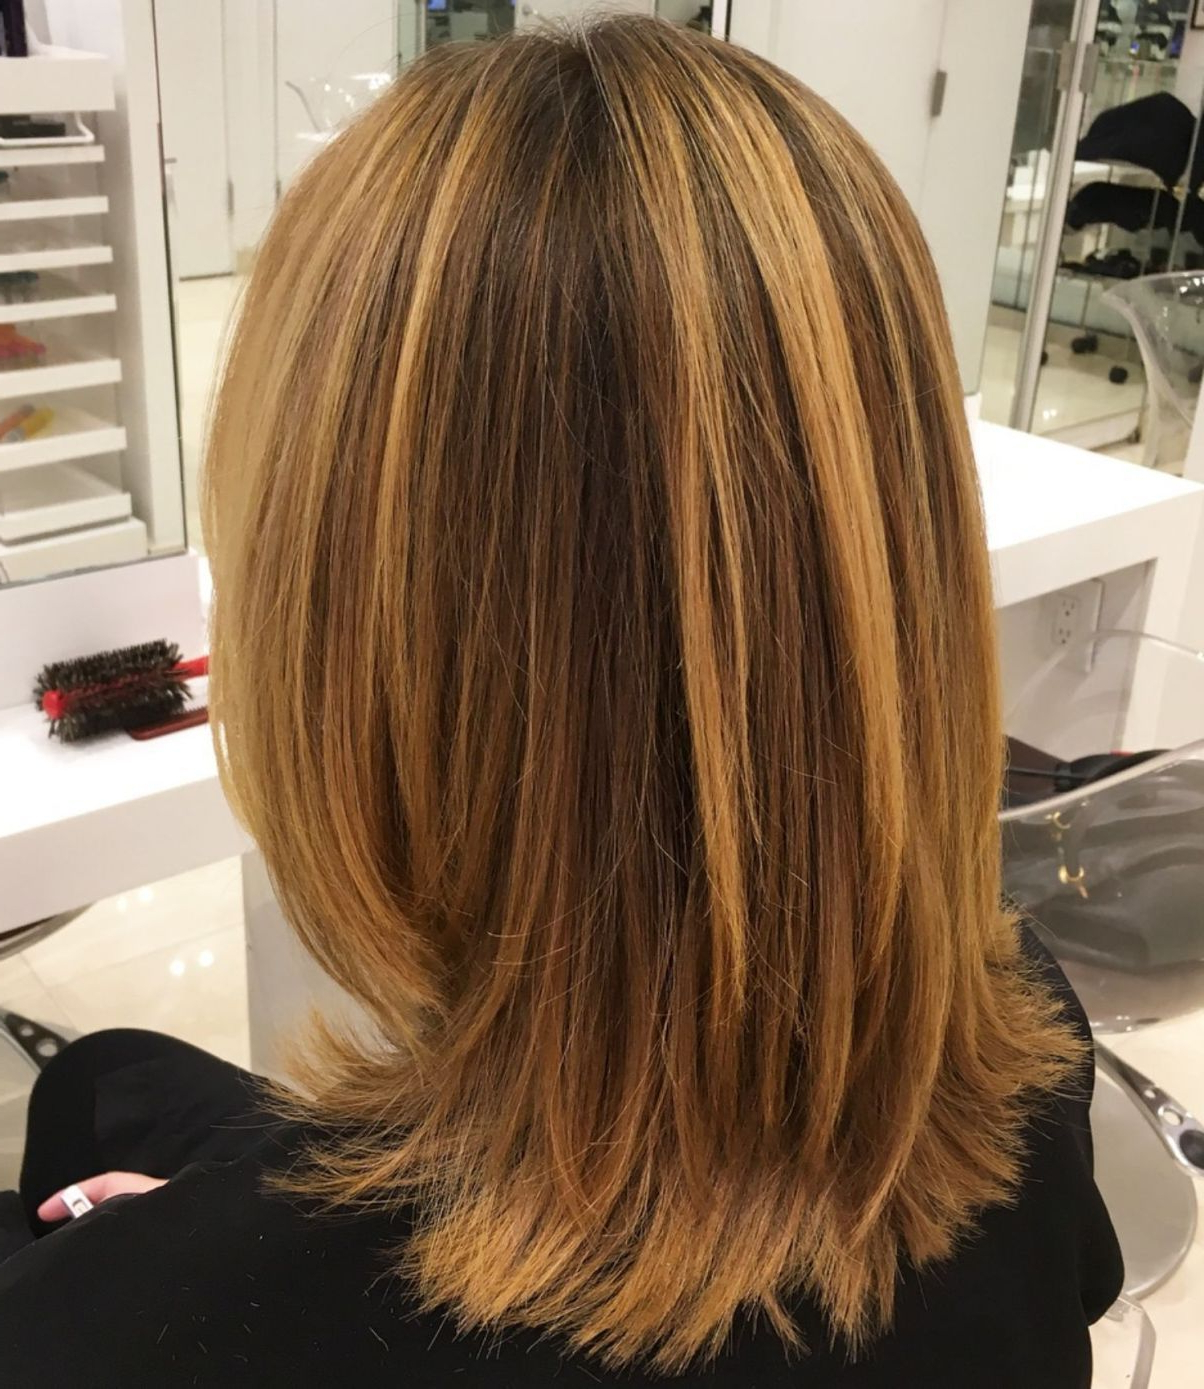 Pin On Love My Hair For Well Known Jagged Red Ombre Hairstyles (View 4 of 20)